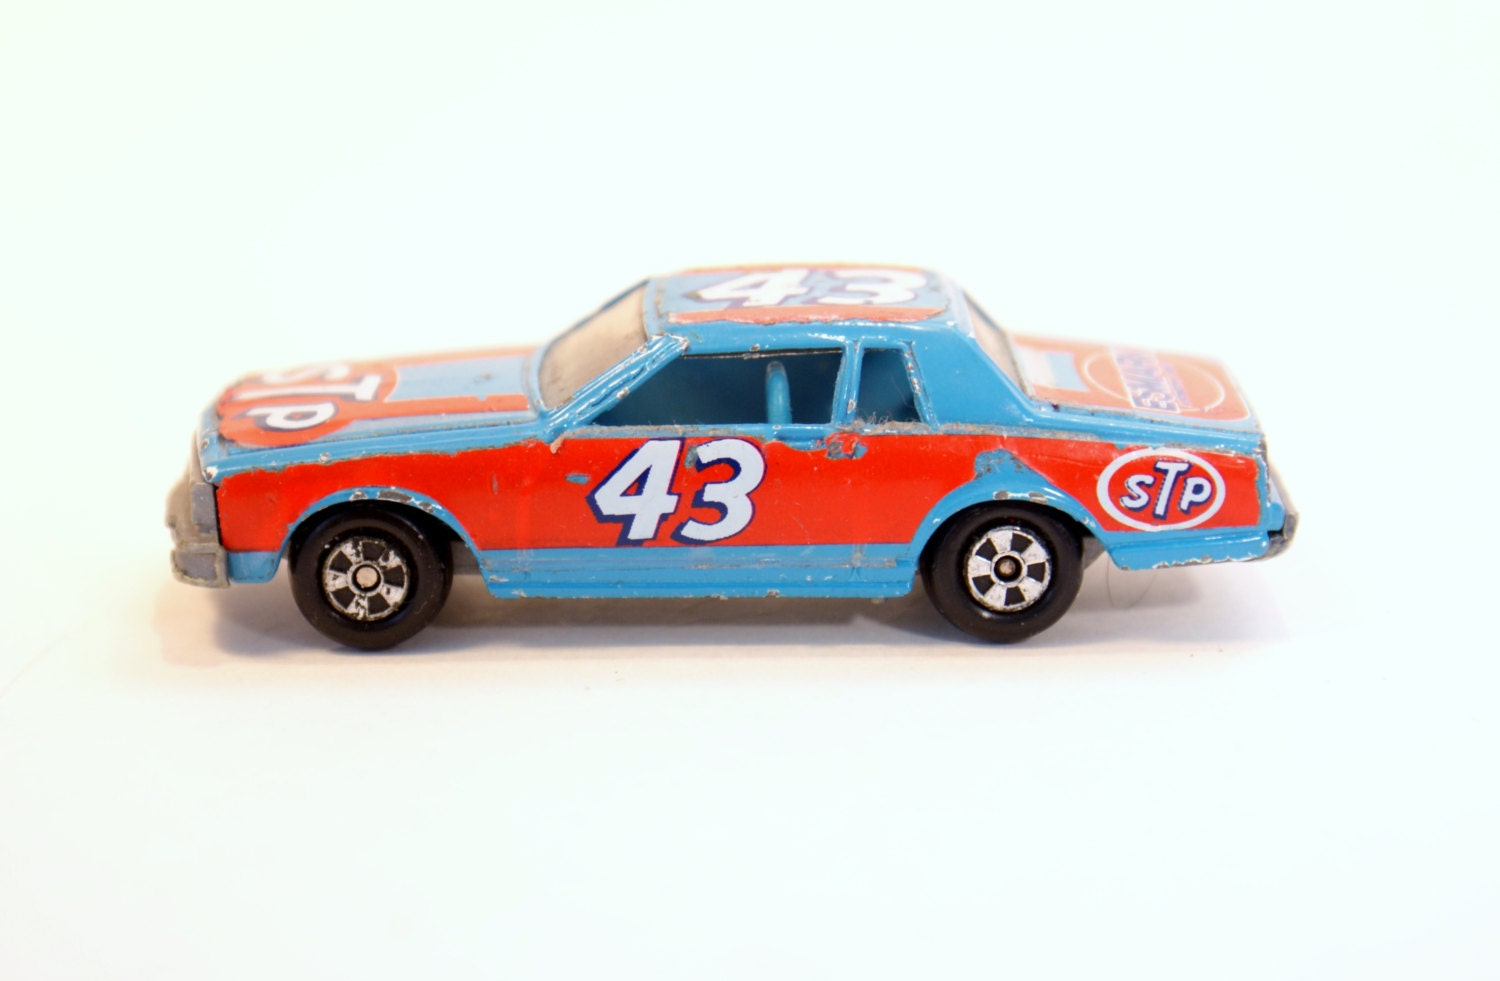 Toy Race Trucks : Vintage toys toy cars rare ertl richard petty race car pre